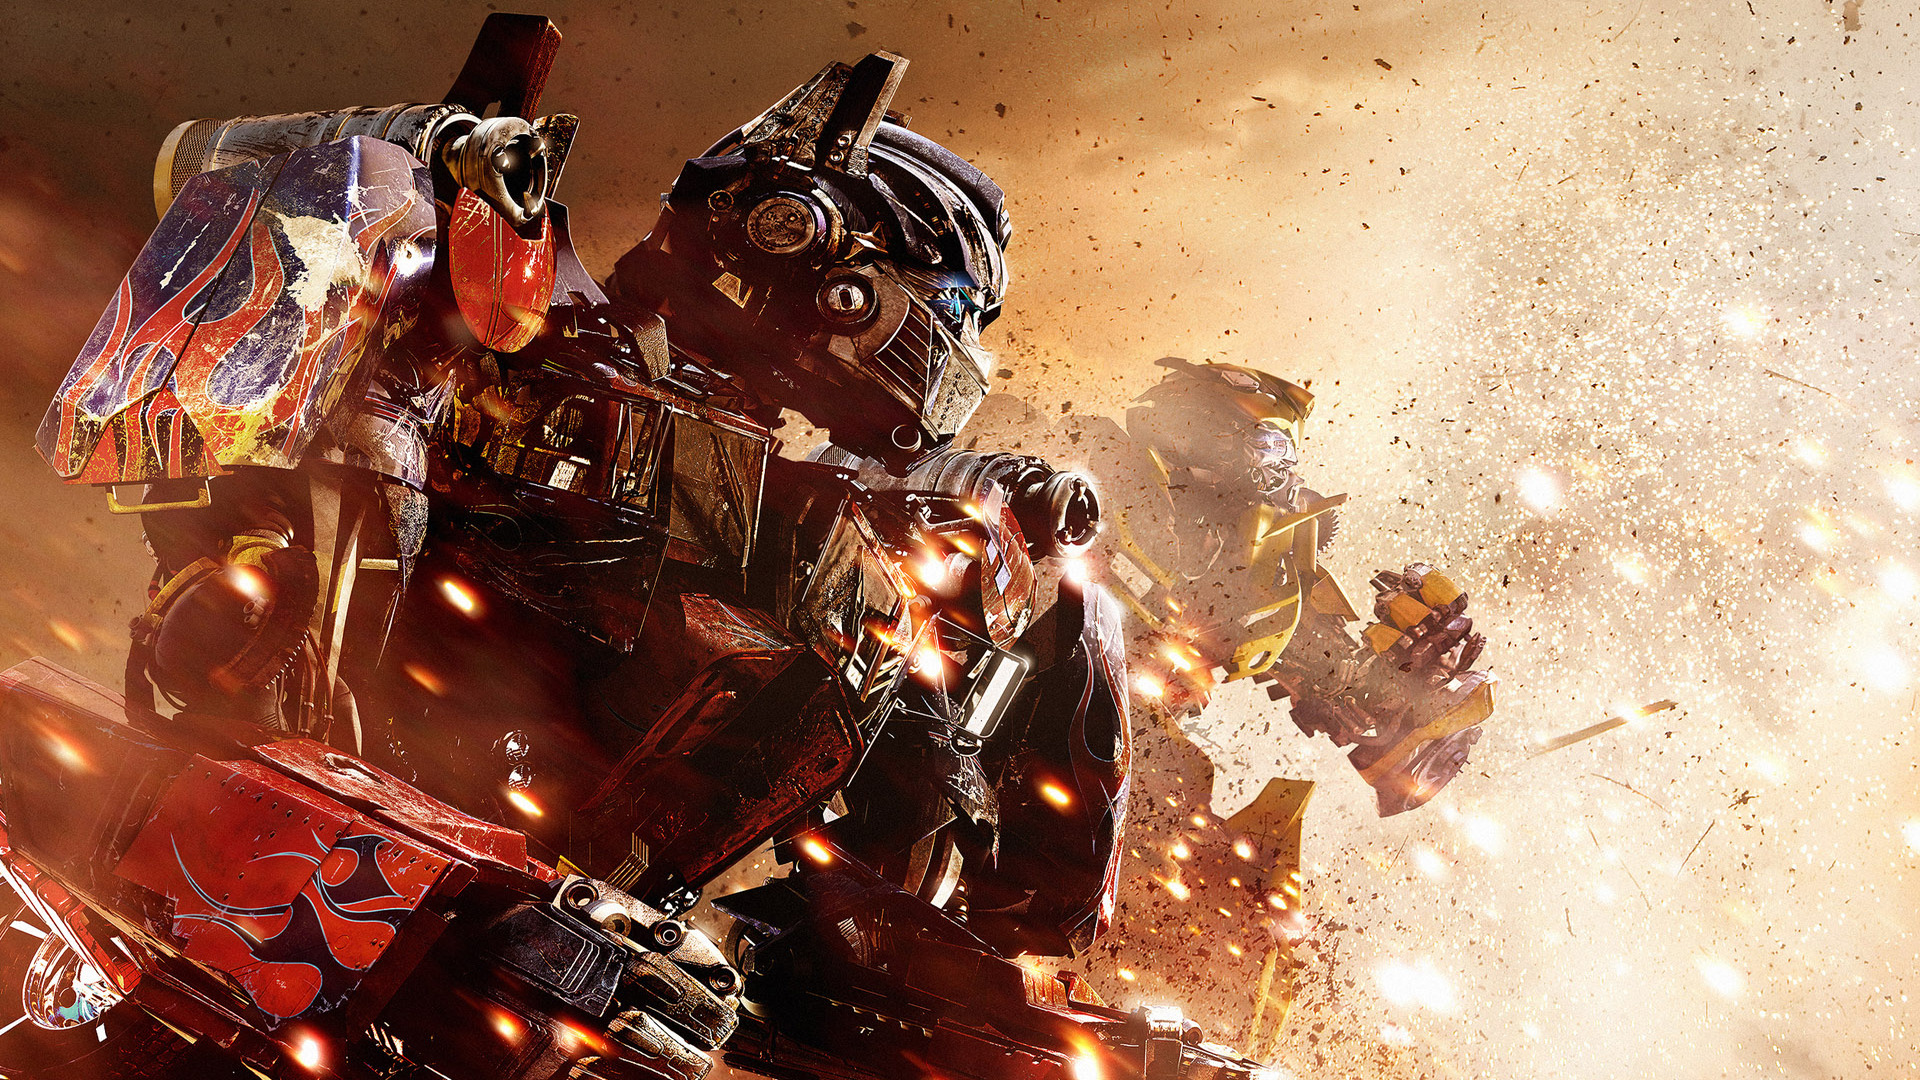 Transformers - Optimus Prime Wallpapers